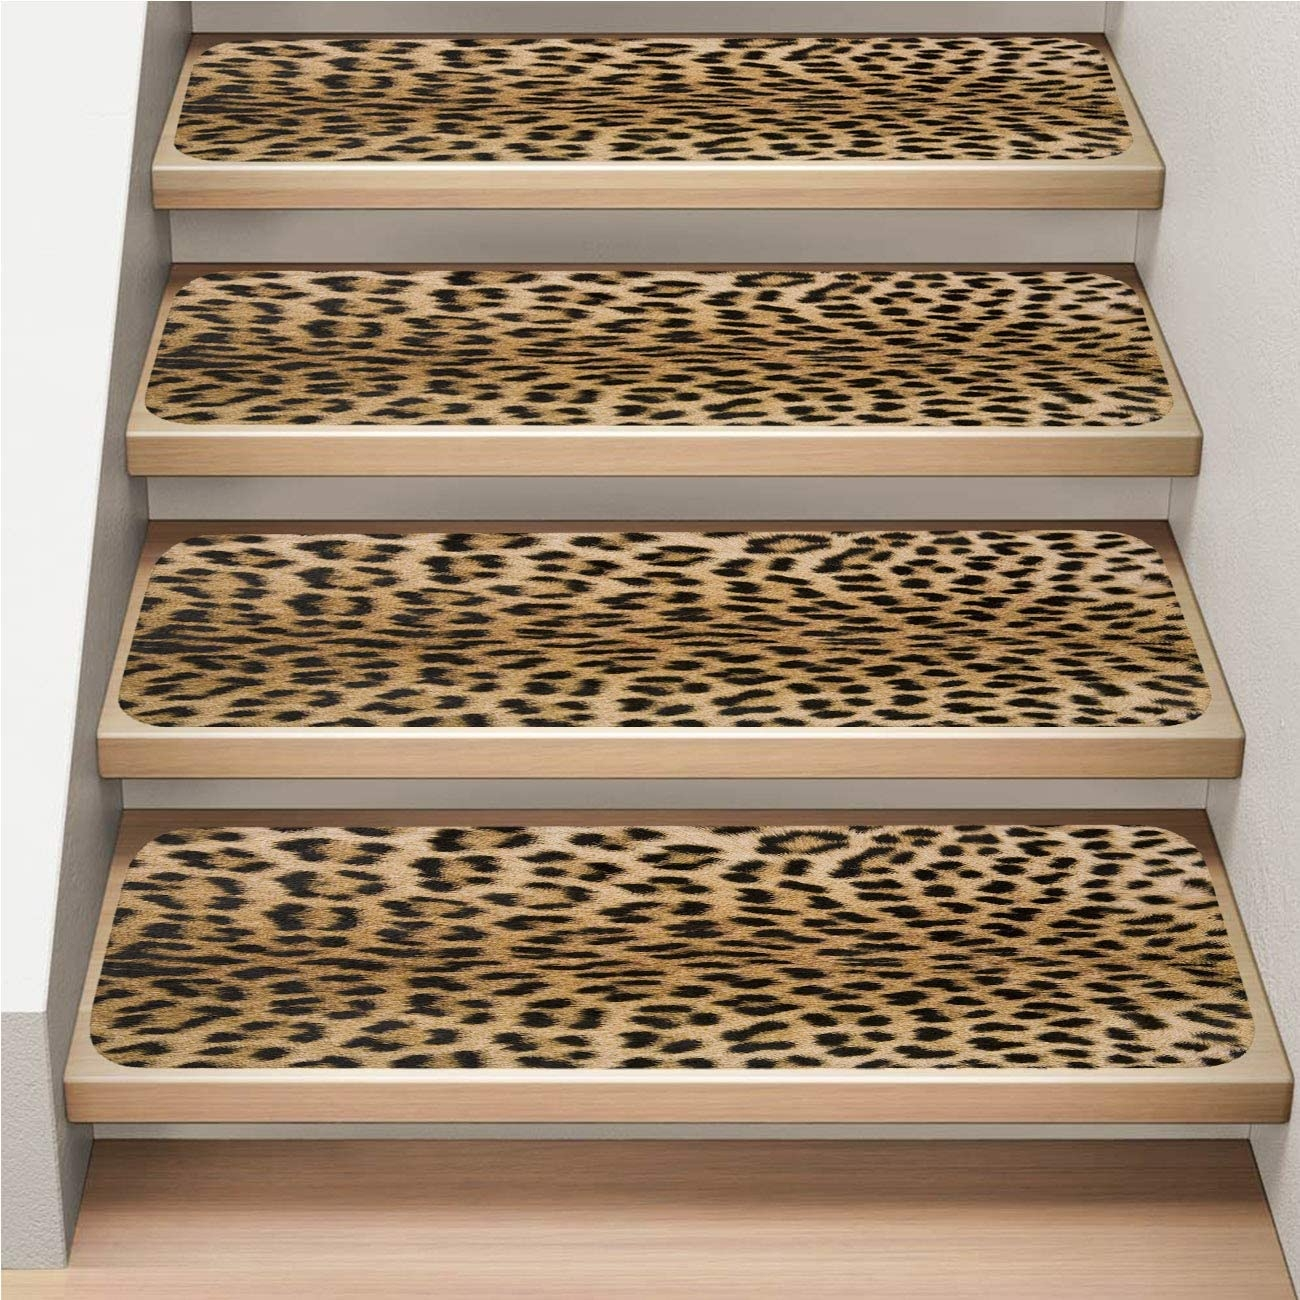 7 Pack Carpet Stair Tread Non Slip Soft Skin S Texture 2 Of | Leopard Carpet On Stairs | Diamond Pattern | Fawn | Stark | Carpeted | Striped